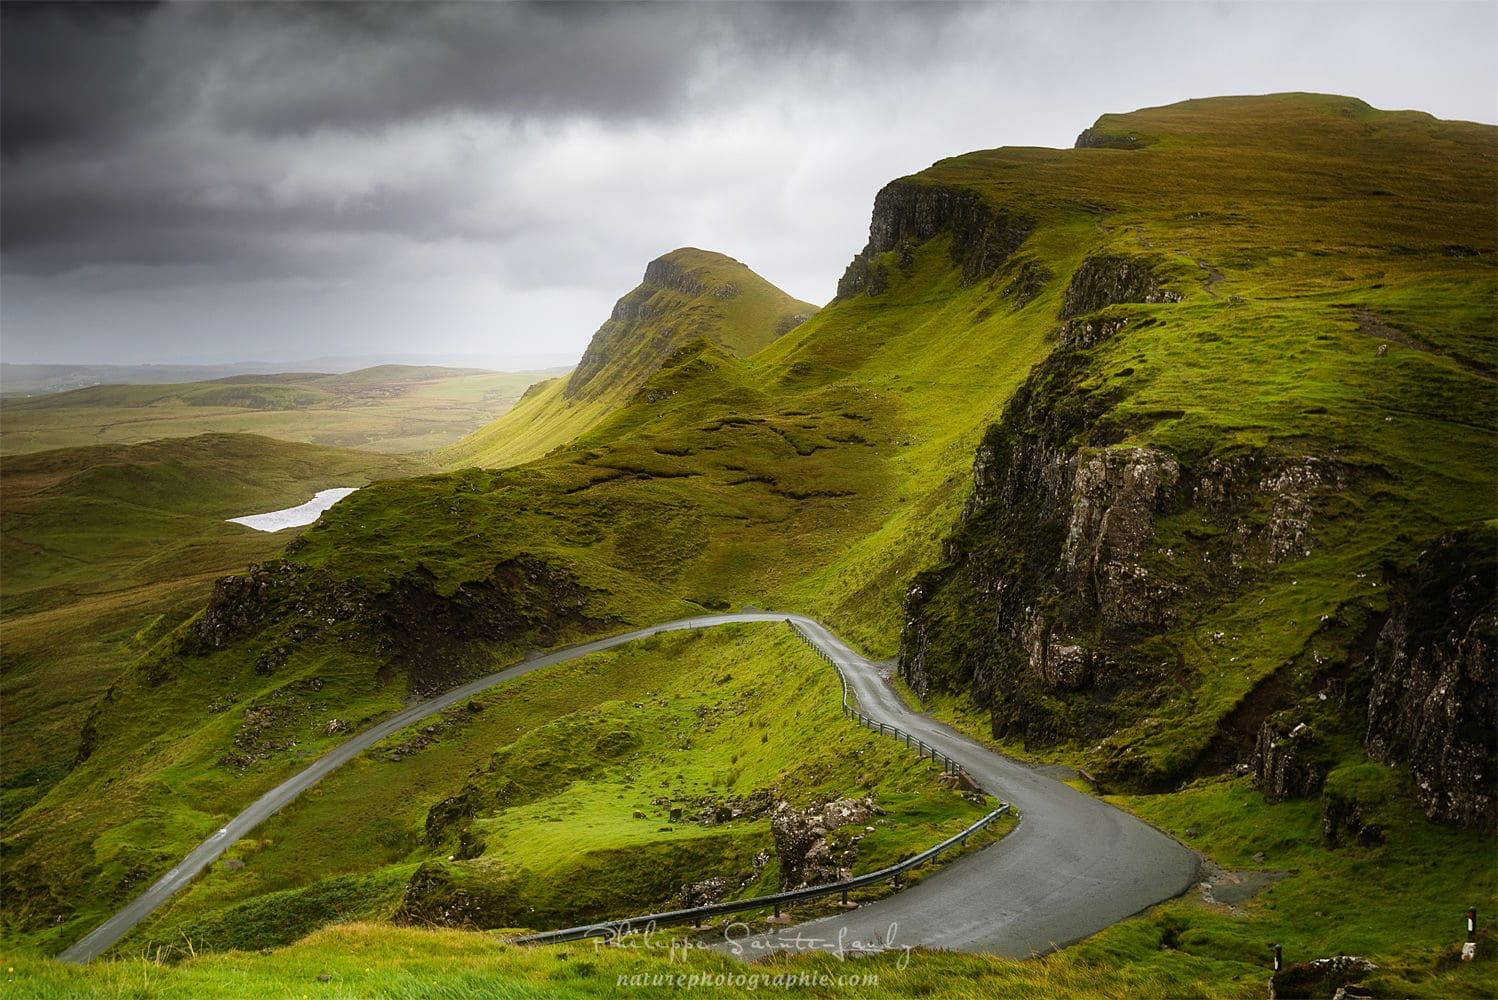 A heart on the Quiraing